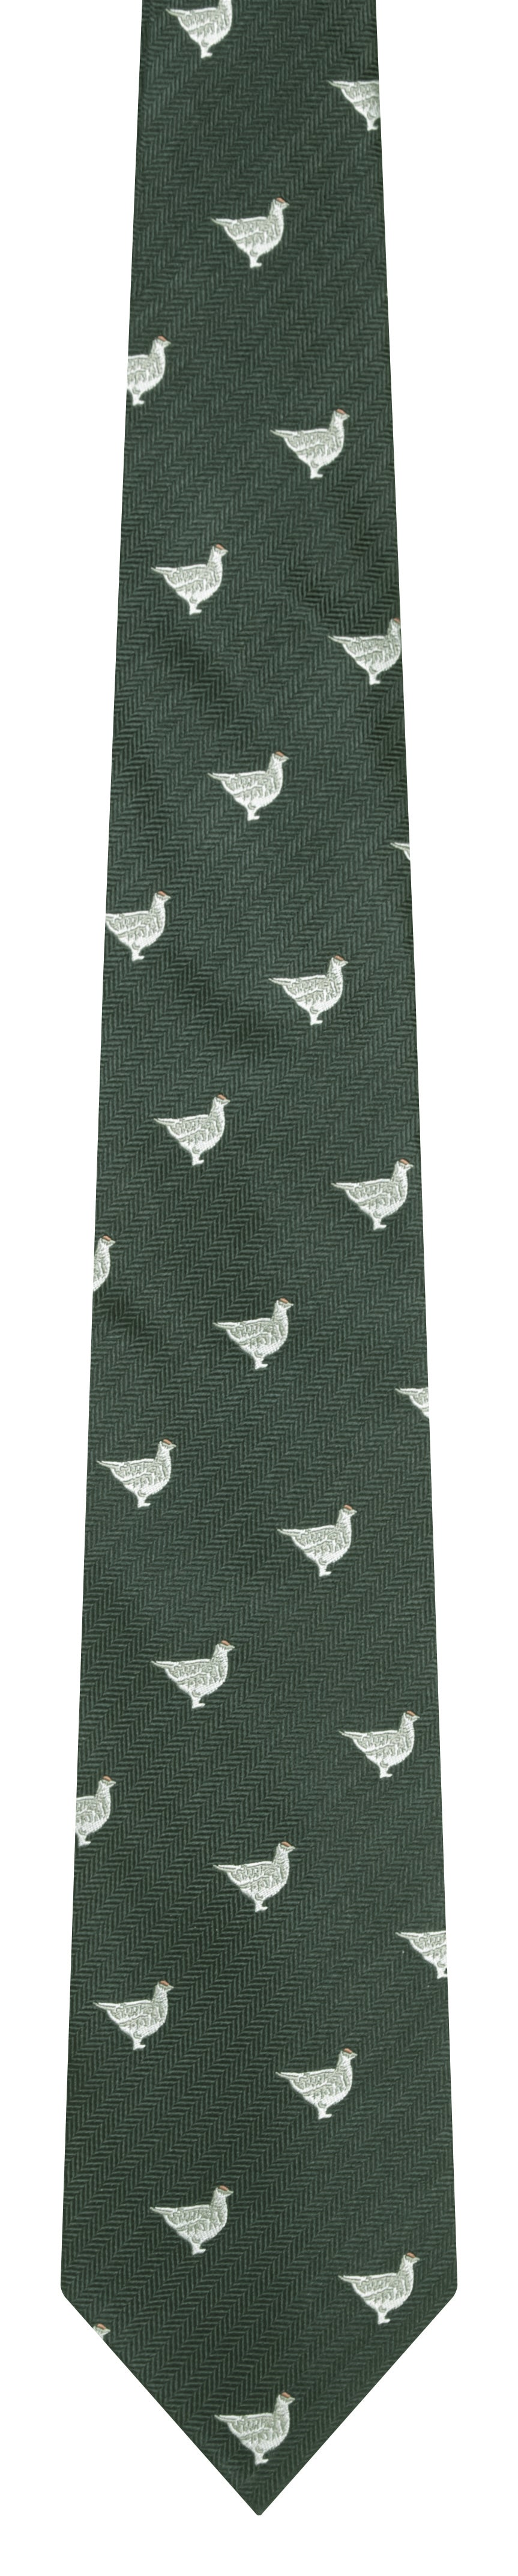 Schoffel Waltham Silk Tie for Men in Olive Ptarmigan